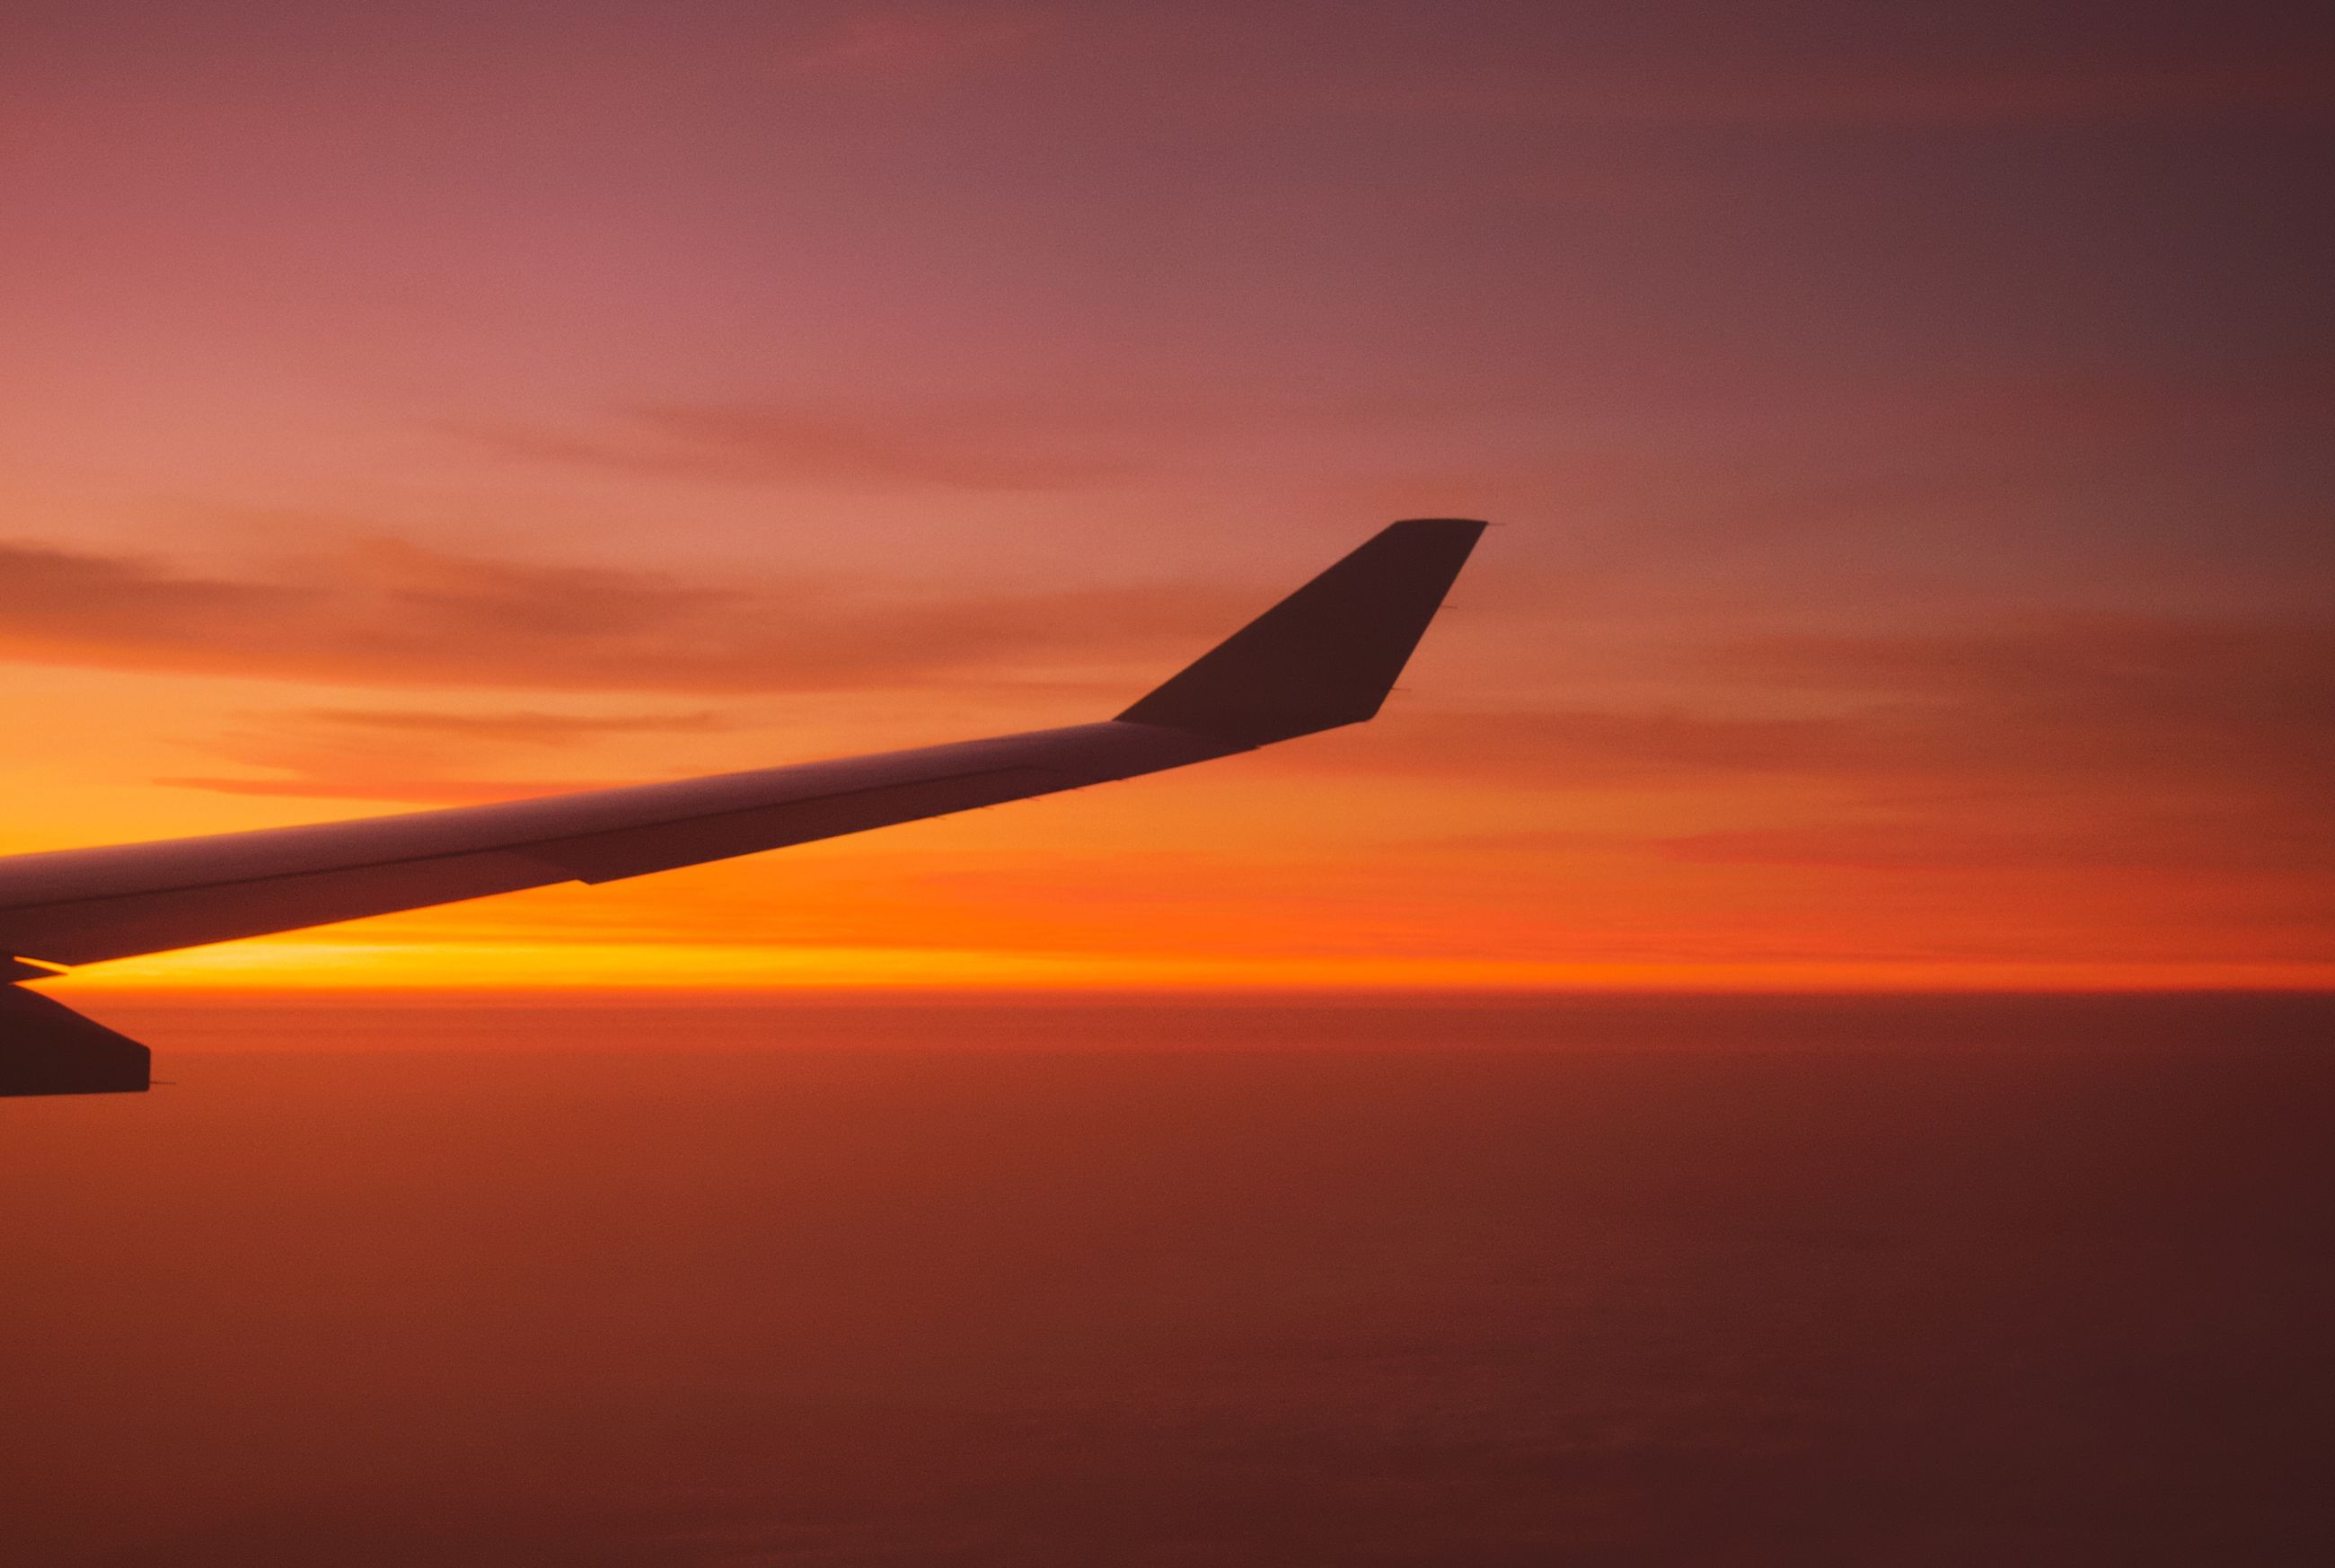 sunset, sky, airplane, orange color, air vehicle, cloud - sky, aircraft wing, beauty in nature, flying, scenics - nature, mode of transportation, no people, nature, mid-air, transportation, silhouette, outdoors, travel, tranquil scene, motion